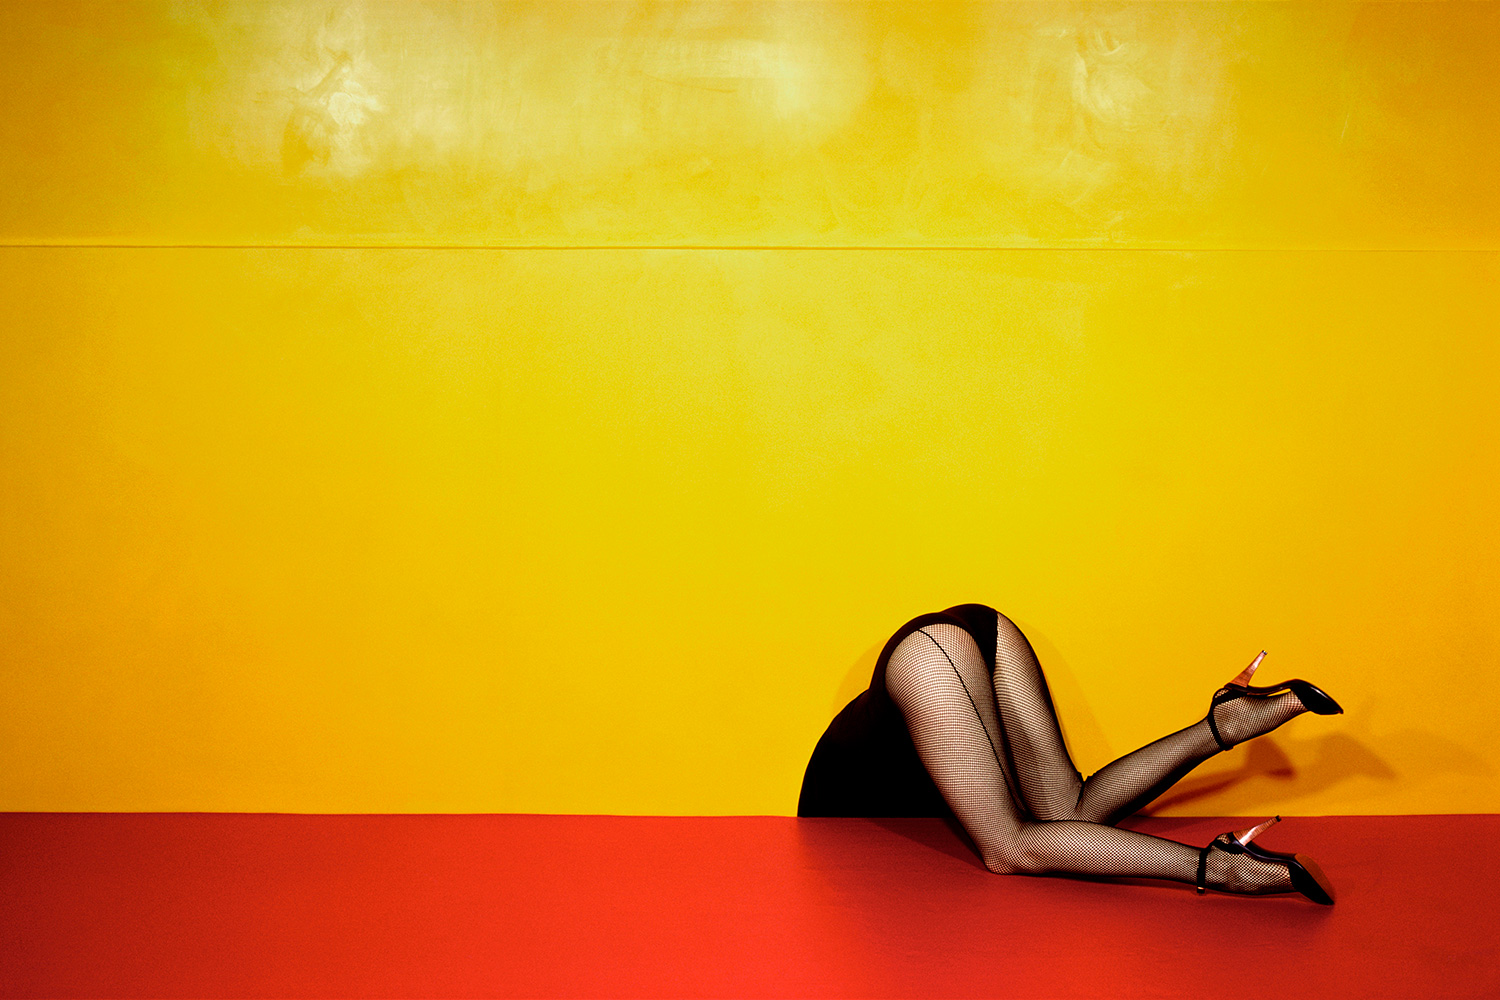 Guy Bourdin, Charles Jourdan, 1979